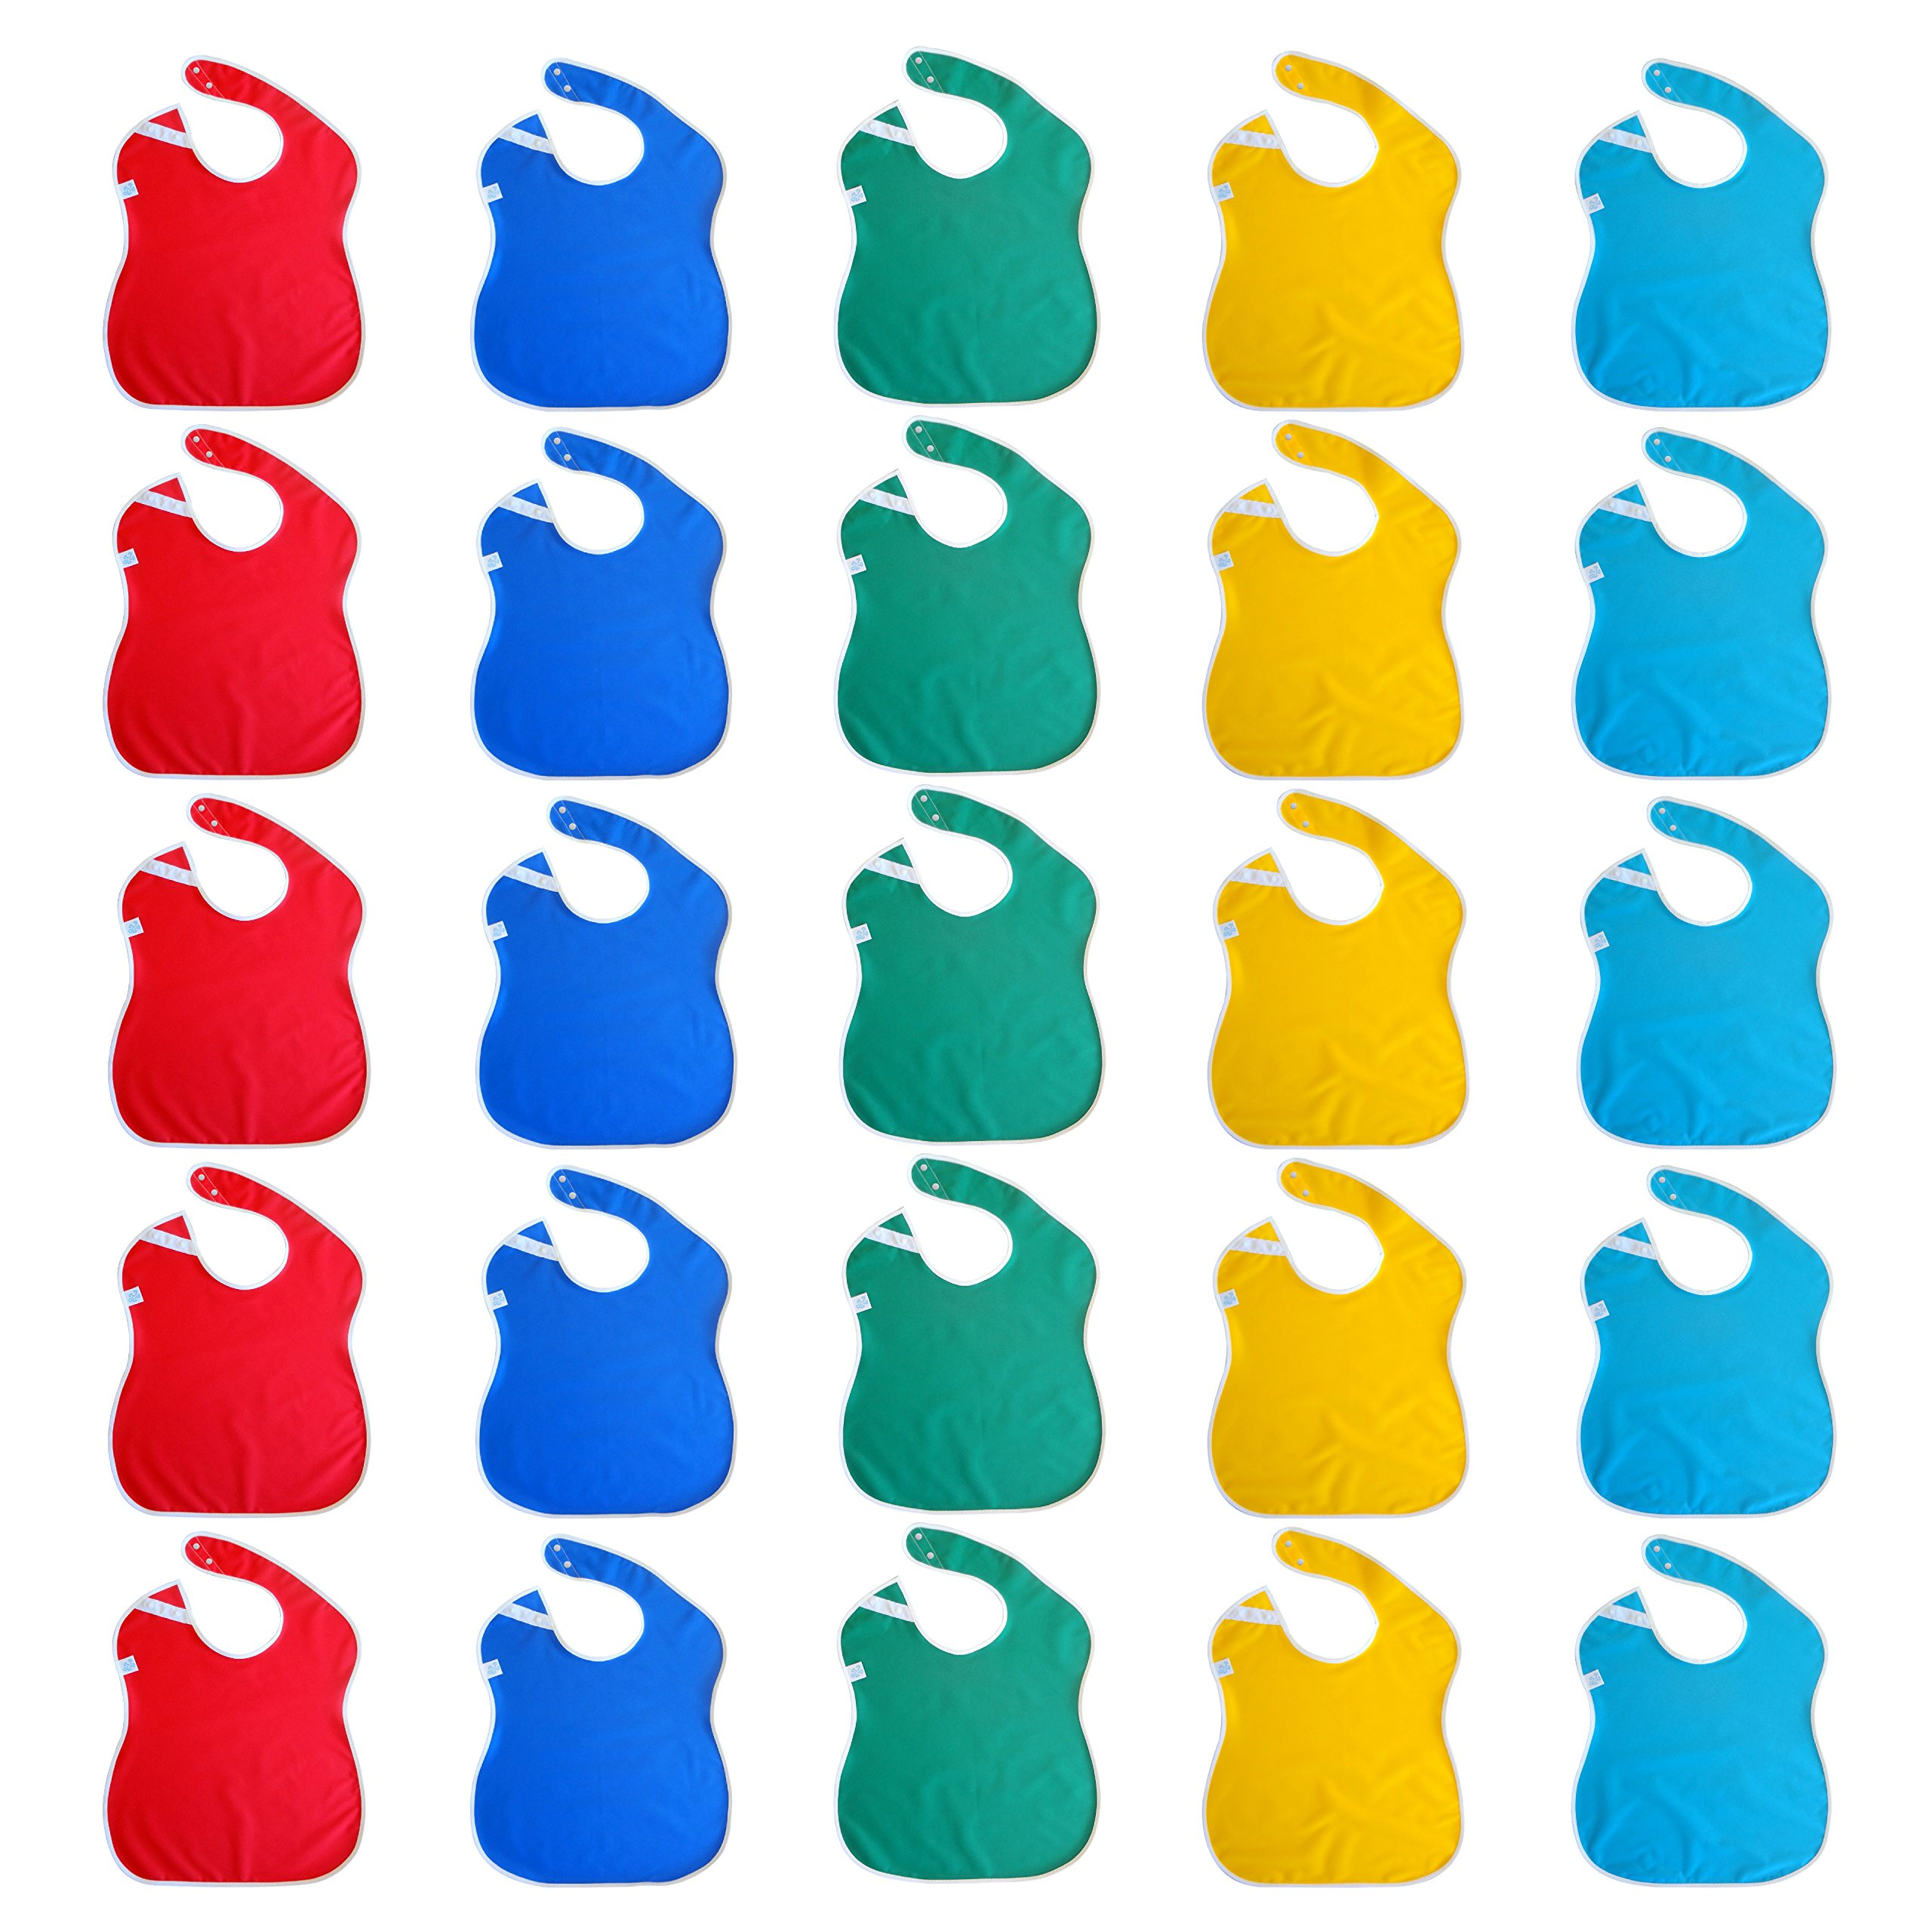 Toppy Toddler Wholesale Baby Bibs in Bulk 25-pack by Toppy Toddler (Image #1)